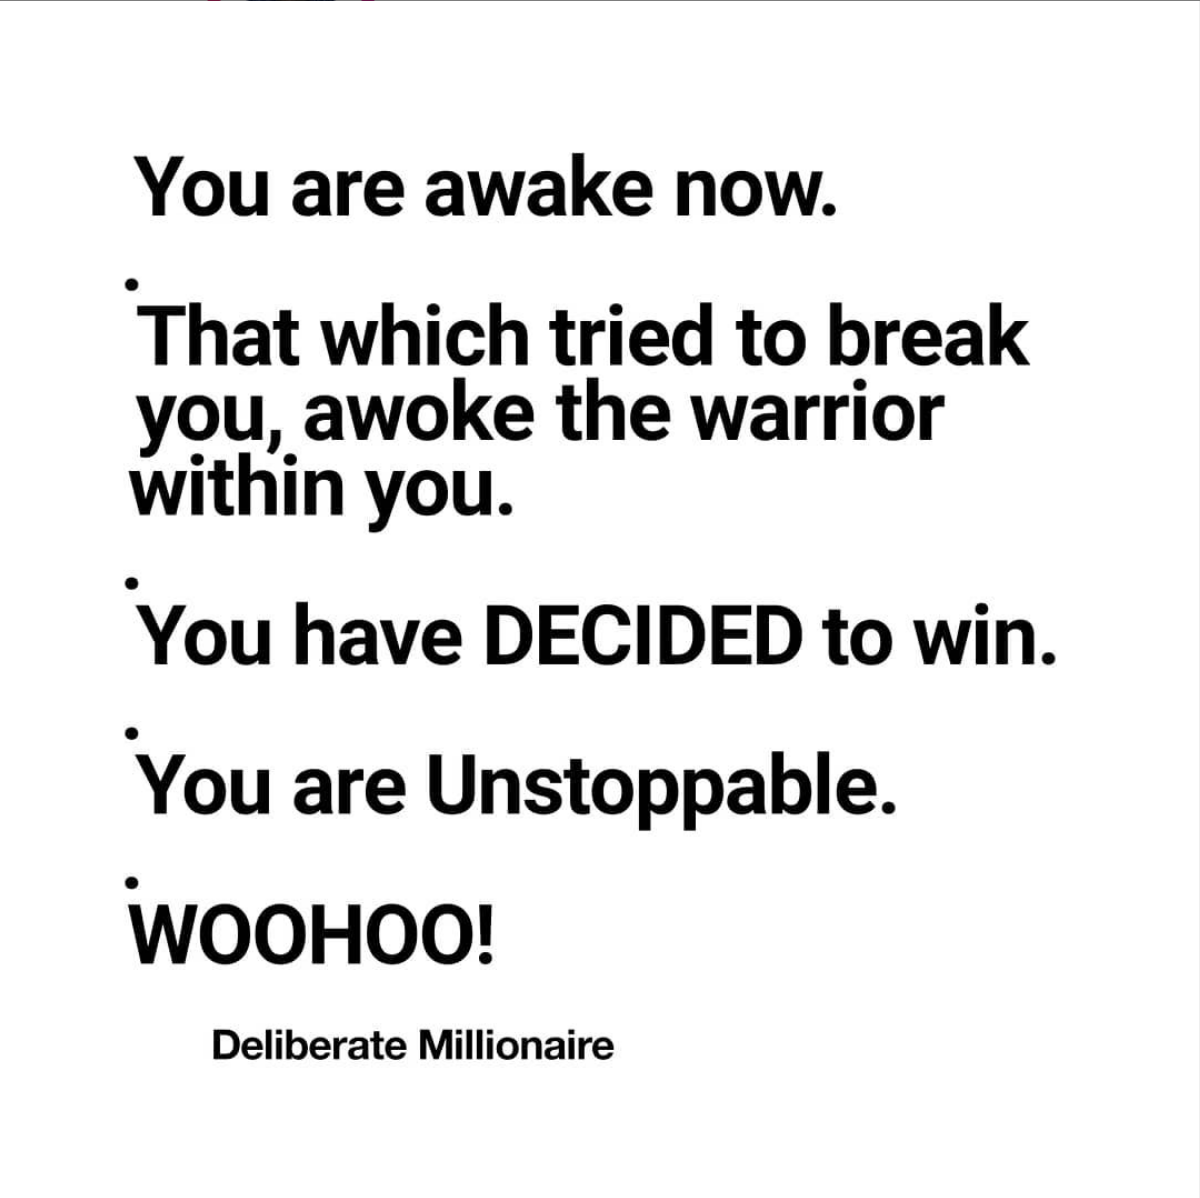 You Are Awake Now! That Which Tried To Break You, Stirred Up The Warrior Within